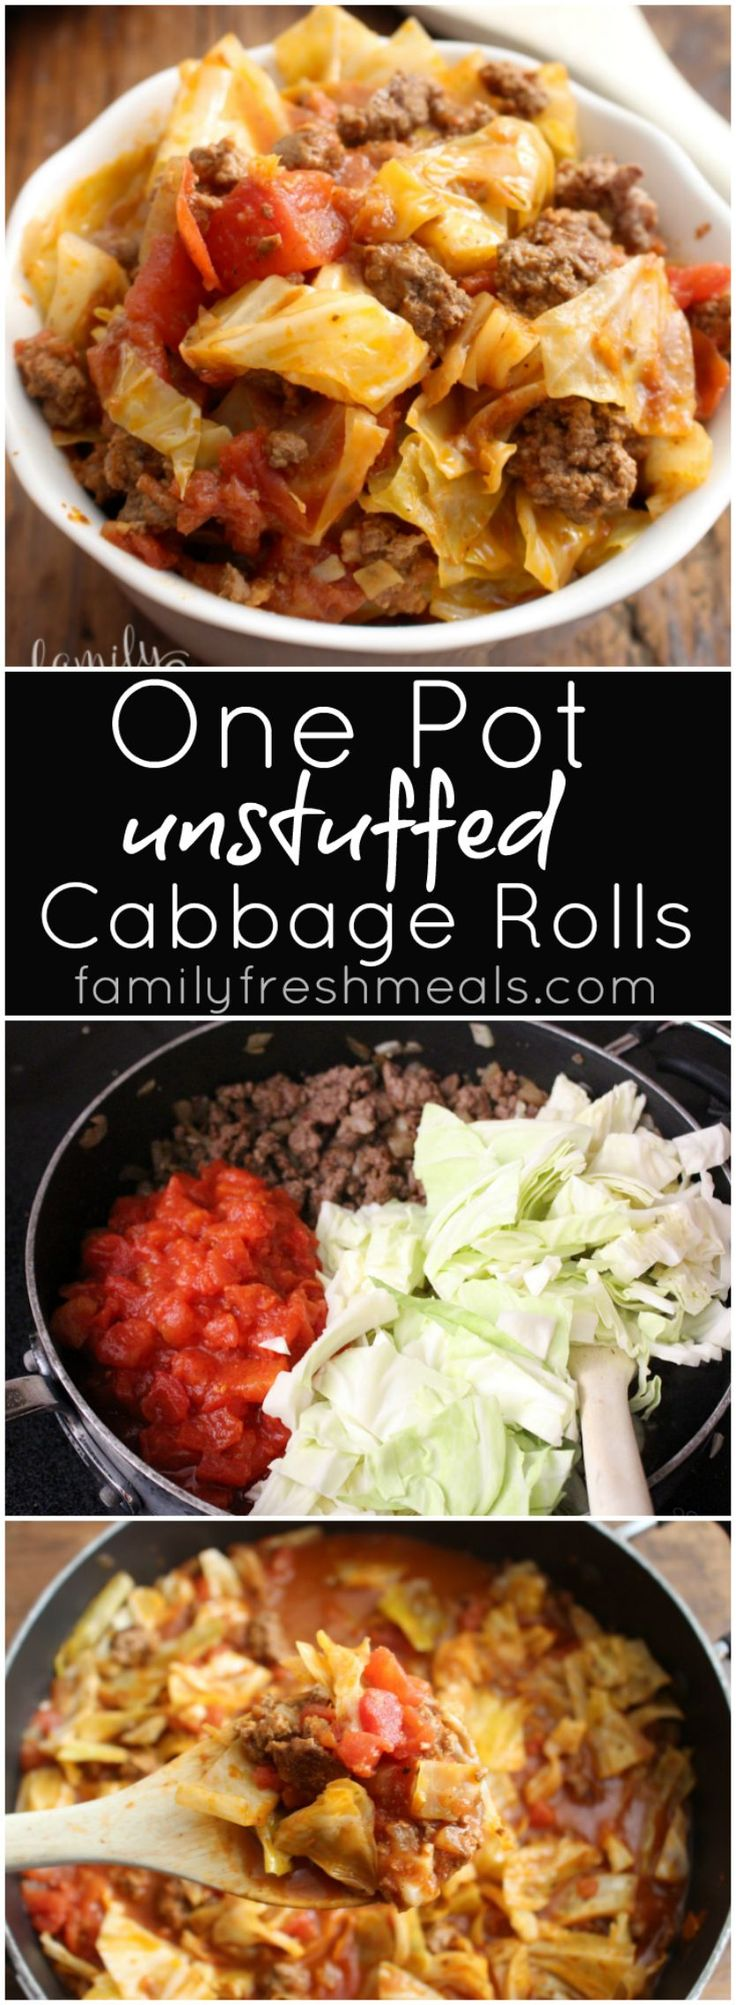 One Pot Unstuffed Cabbage Rolls - A fast, cheap family meal…